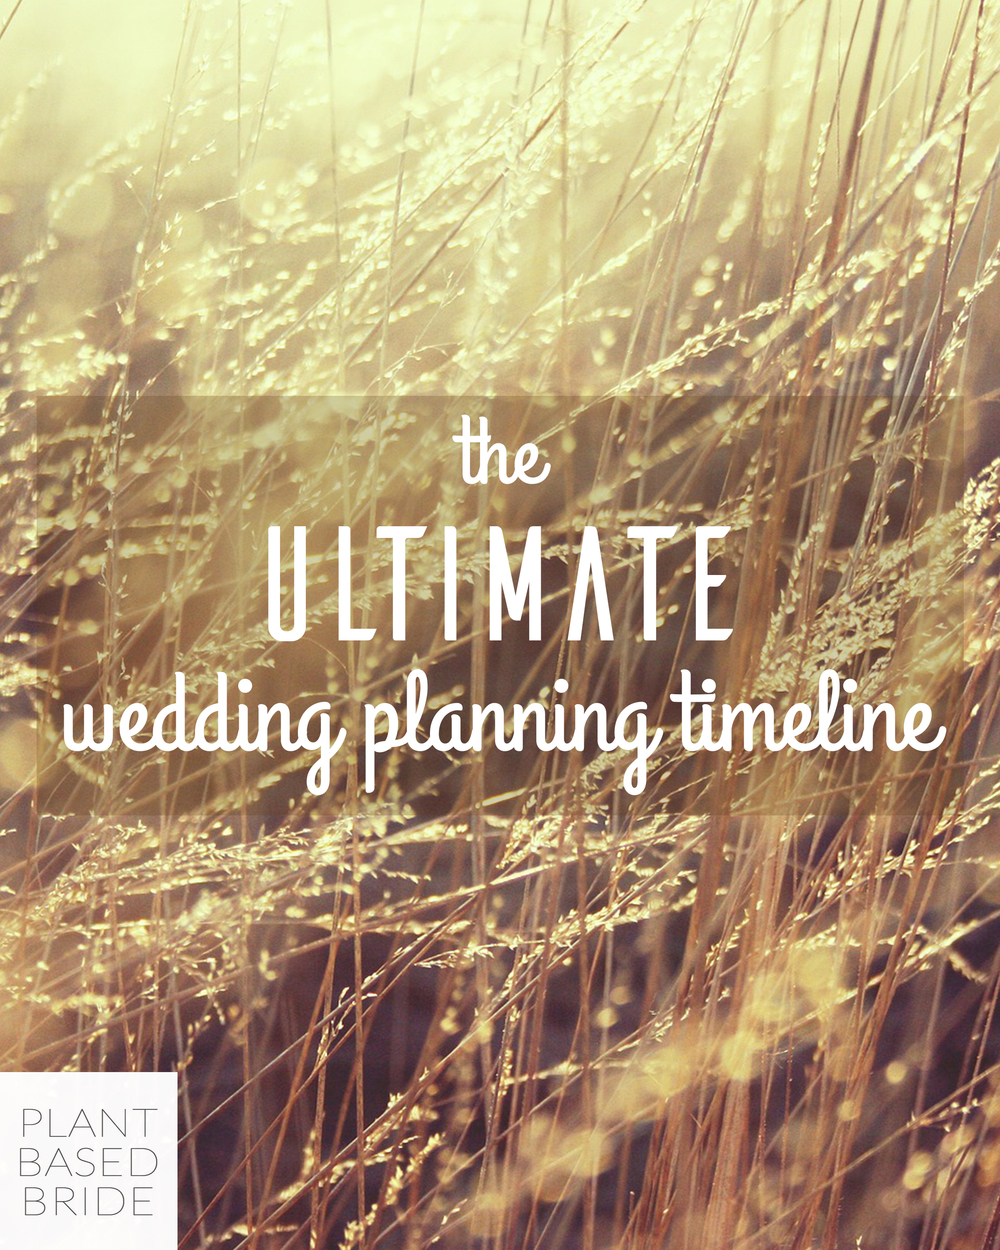 Must read!  Pin it now, you'll thank me later!  This is the BEST wedding planing timeline I've seen.  So comprehensive!  From plantbasedbride.com